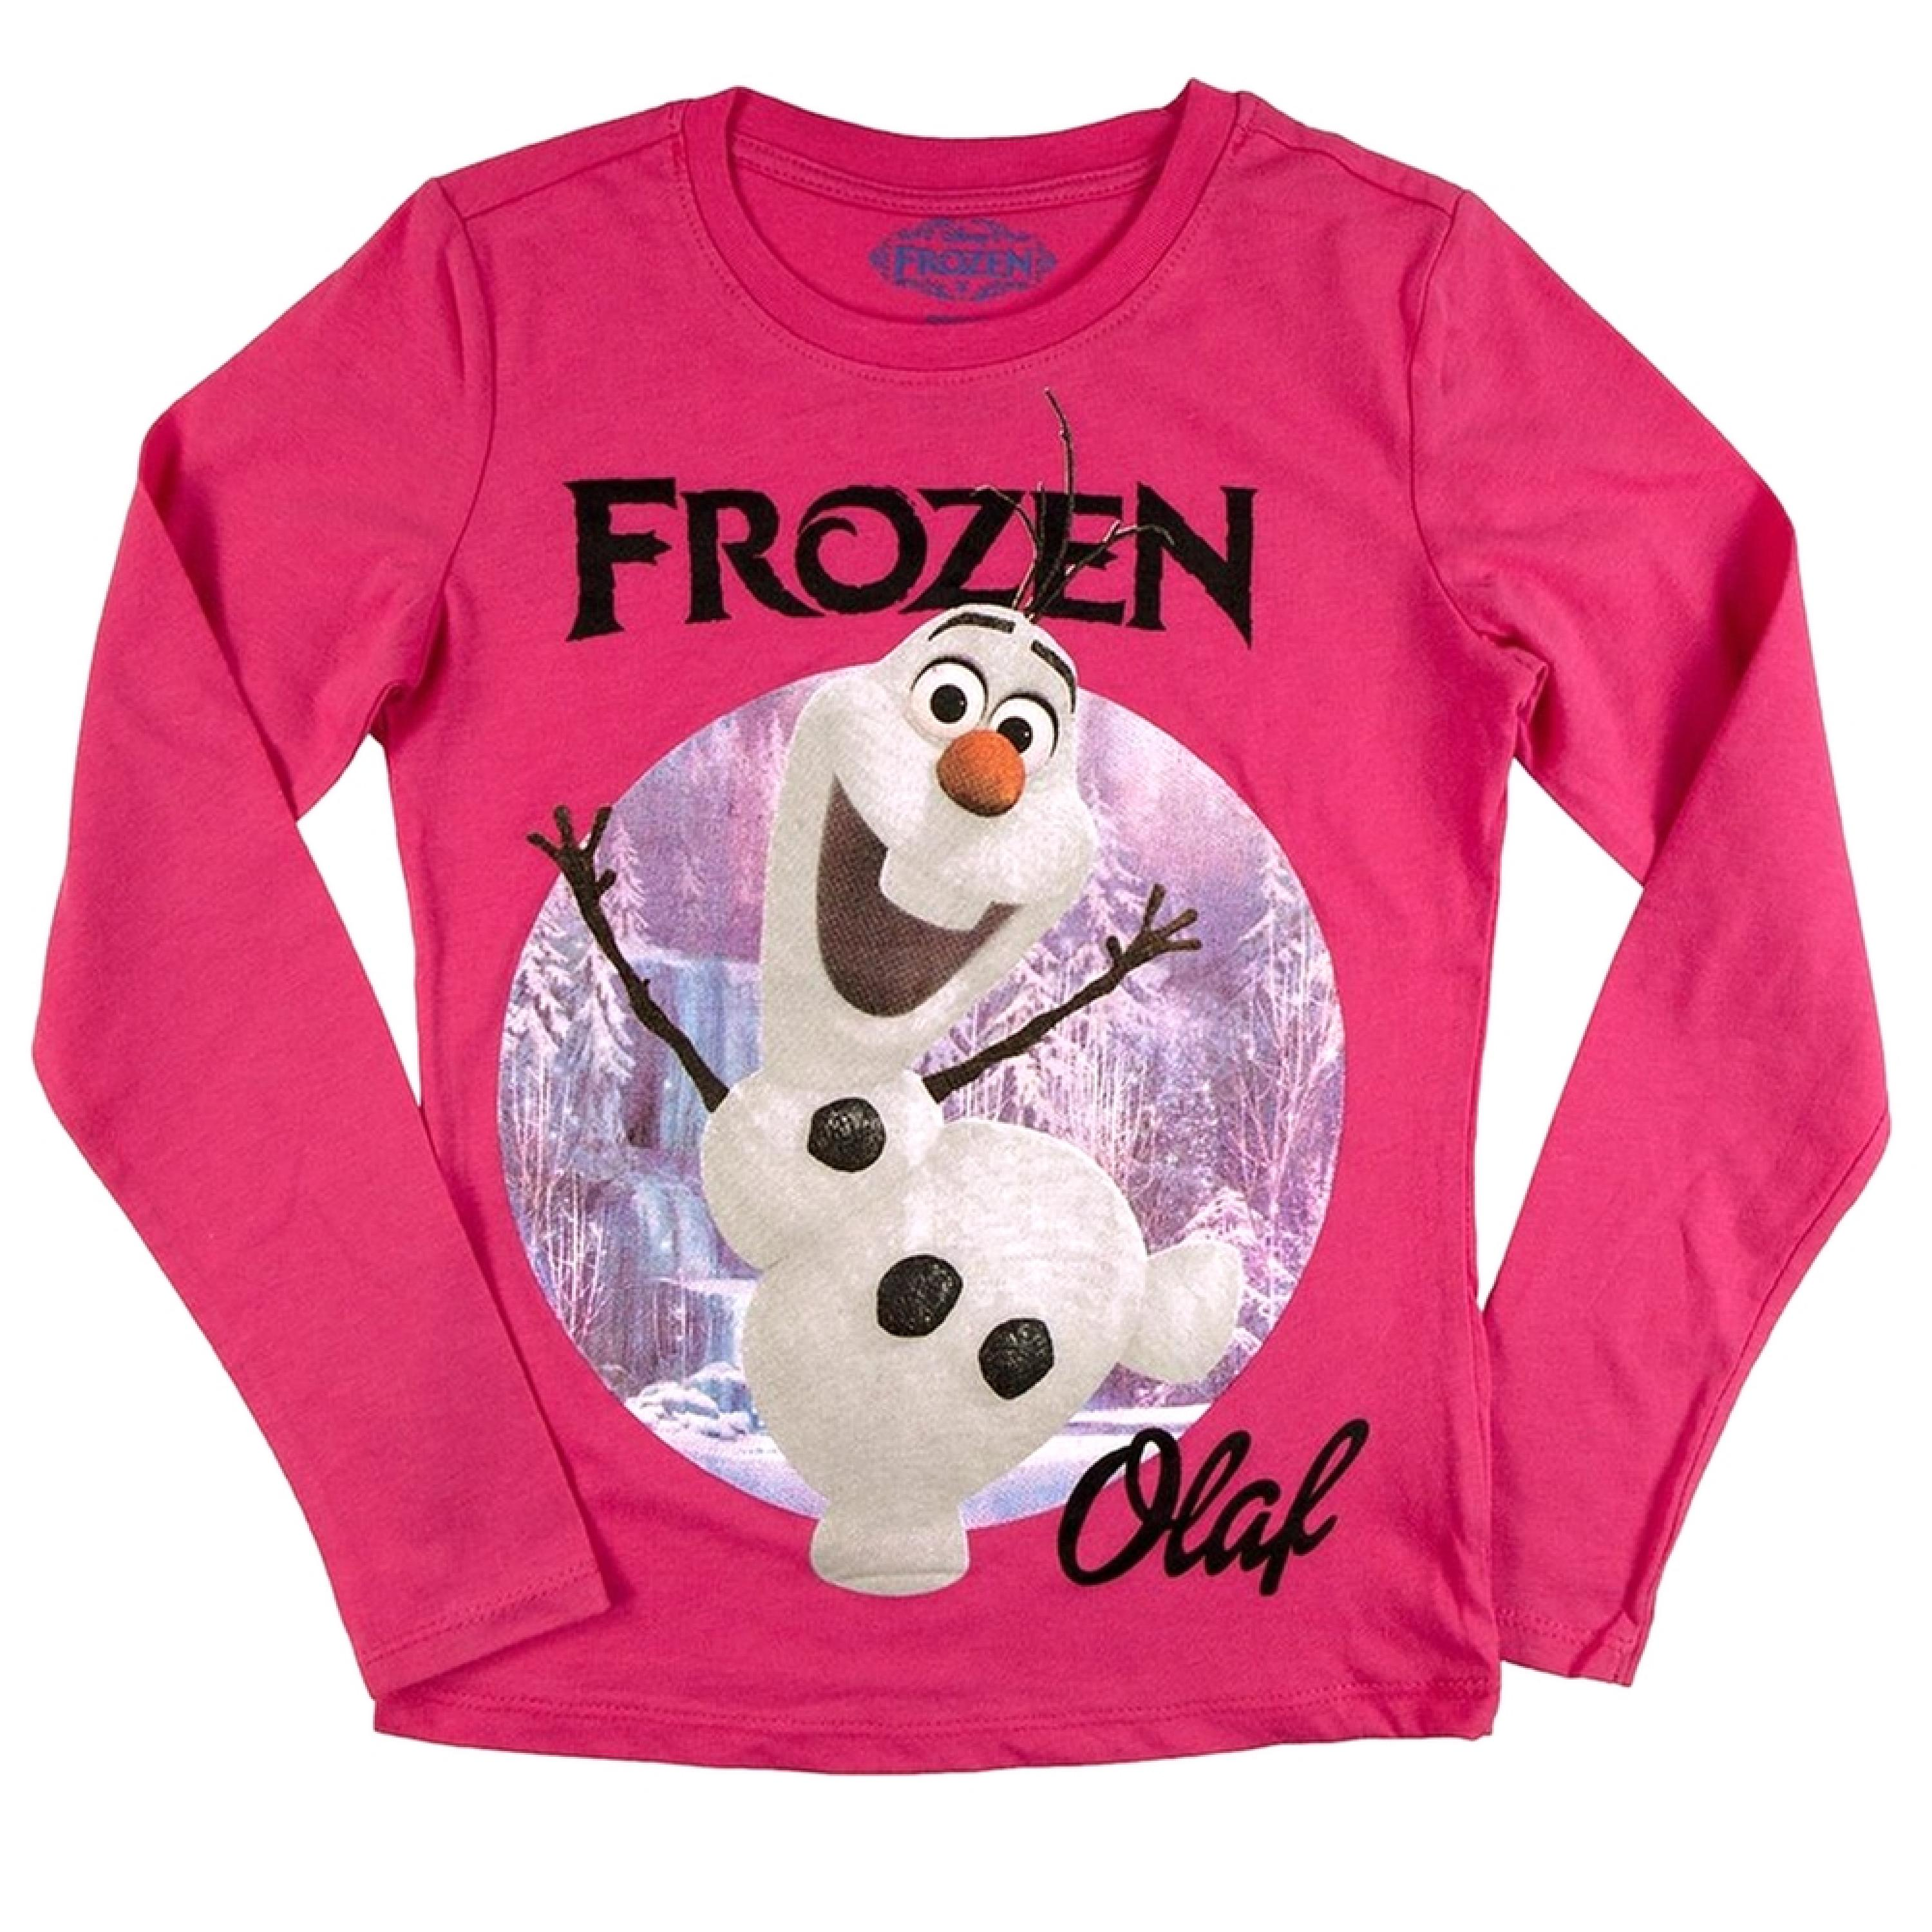 Frozen - Olaf Frozen Girls Juvy Long Sleeve T-Shirt